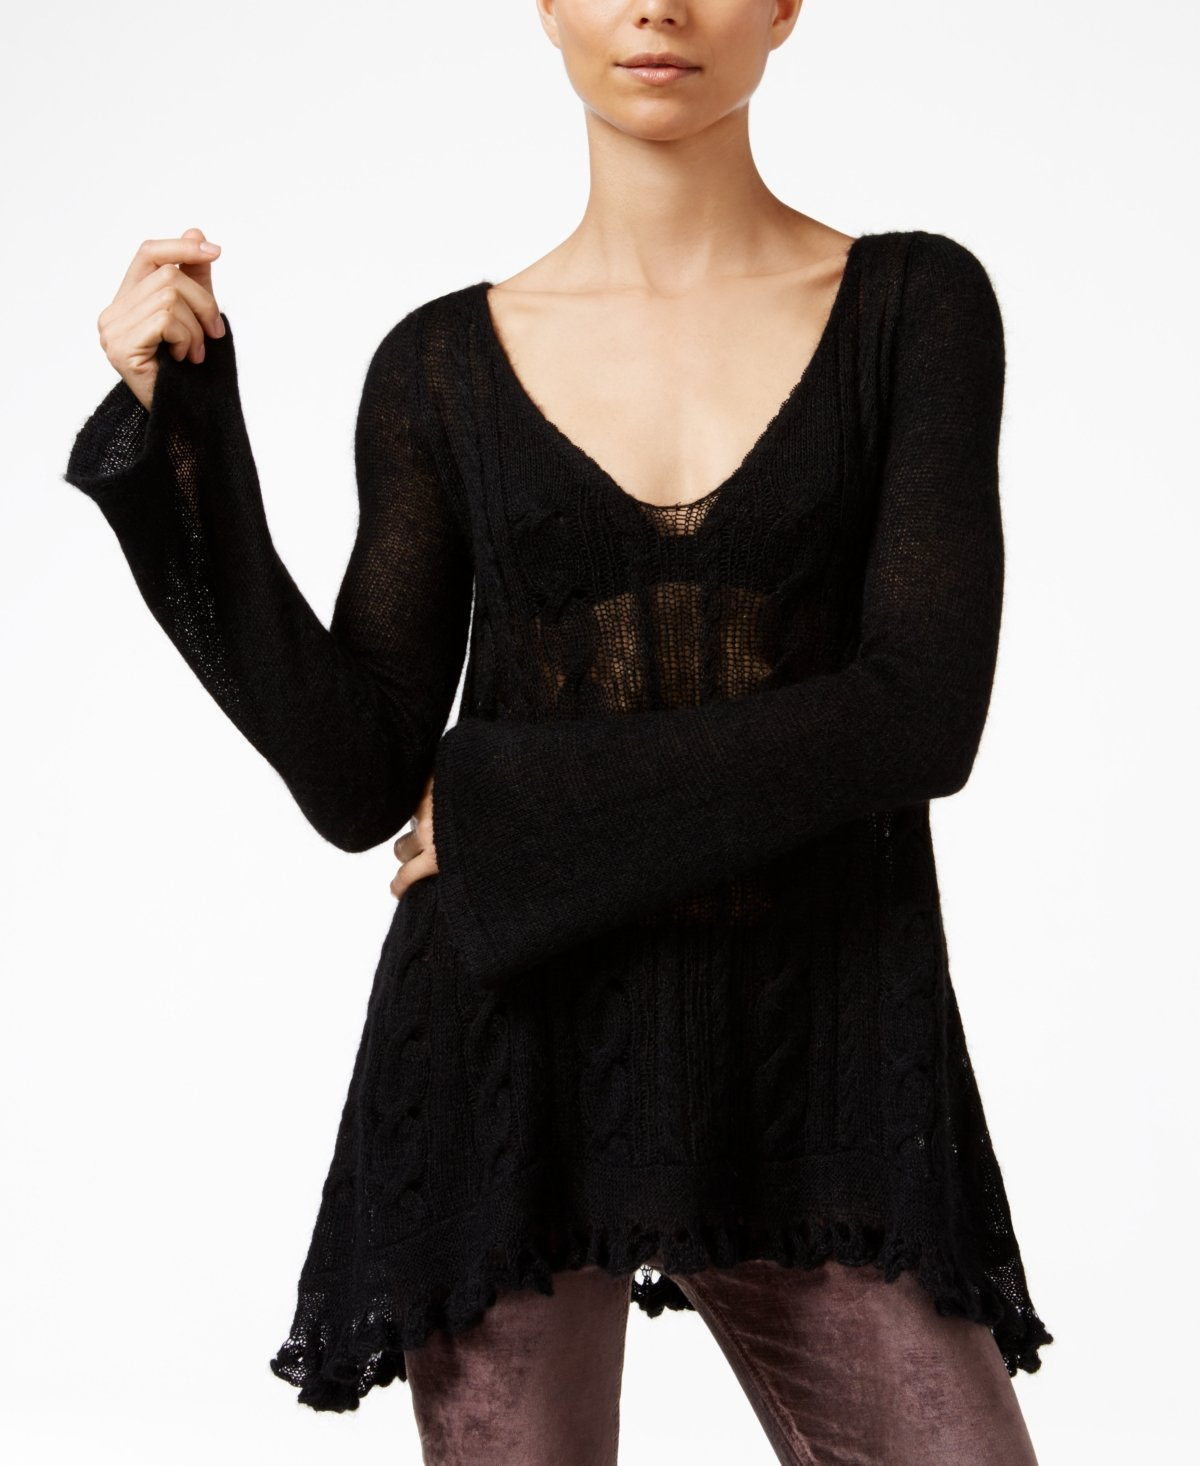 Free People Women's Waterfall V-neck Pullover Sweater (Medium, Black) by Free People